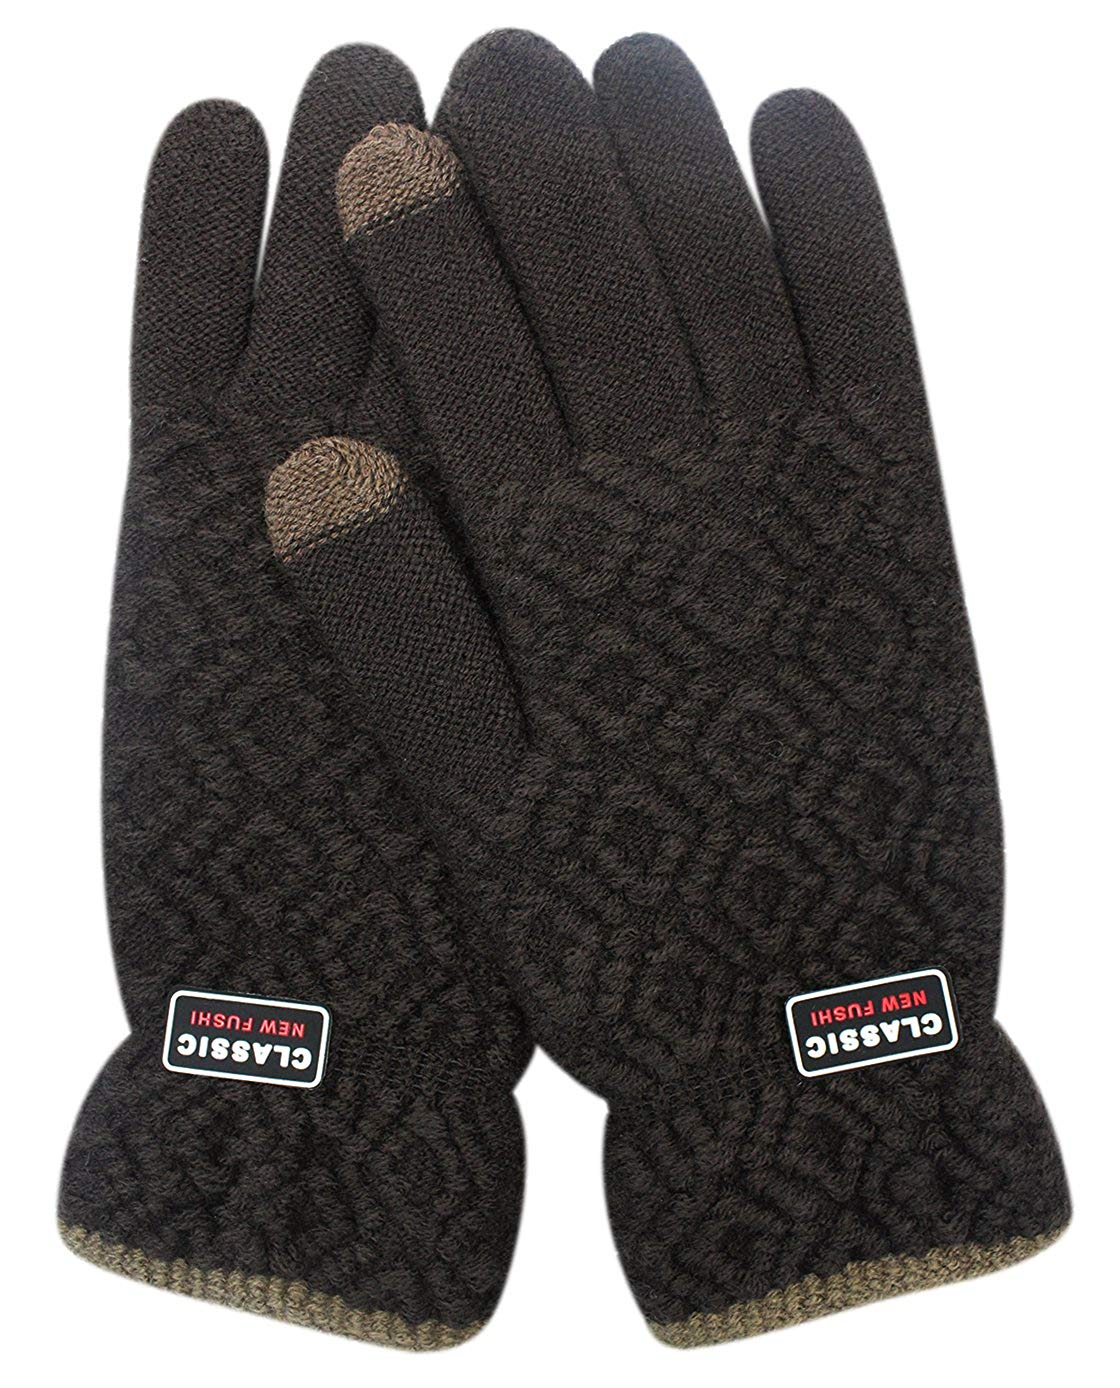 eeeb0243cb3 Get Quotations · Mens Thick Knitted Wool Winter Gloves Warm Soft Mittens  with Touchscreen Fingers